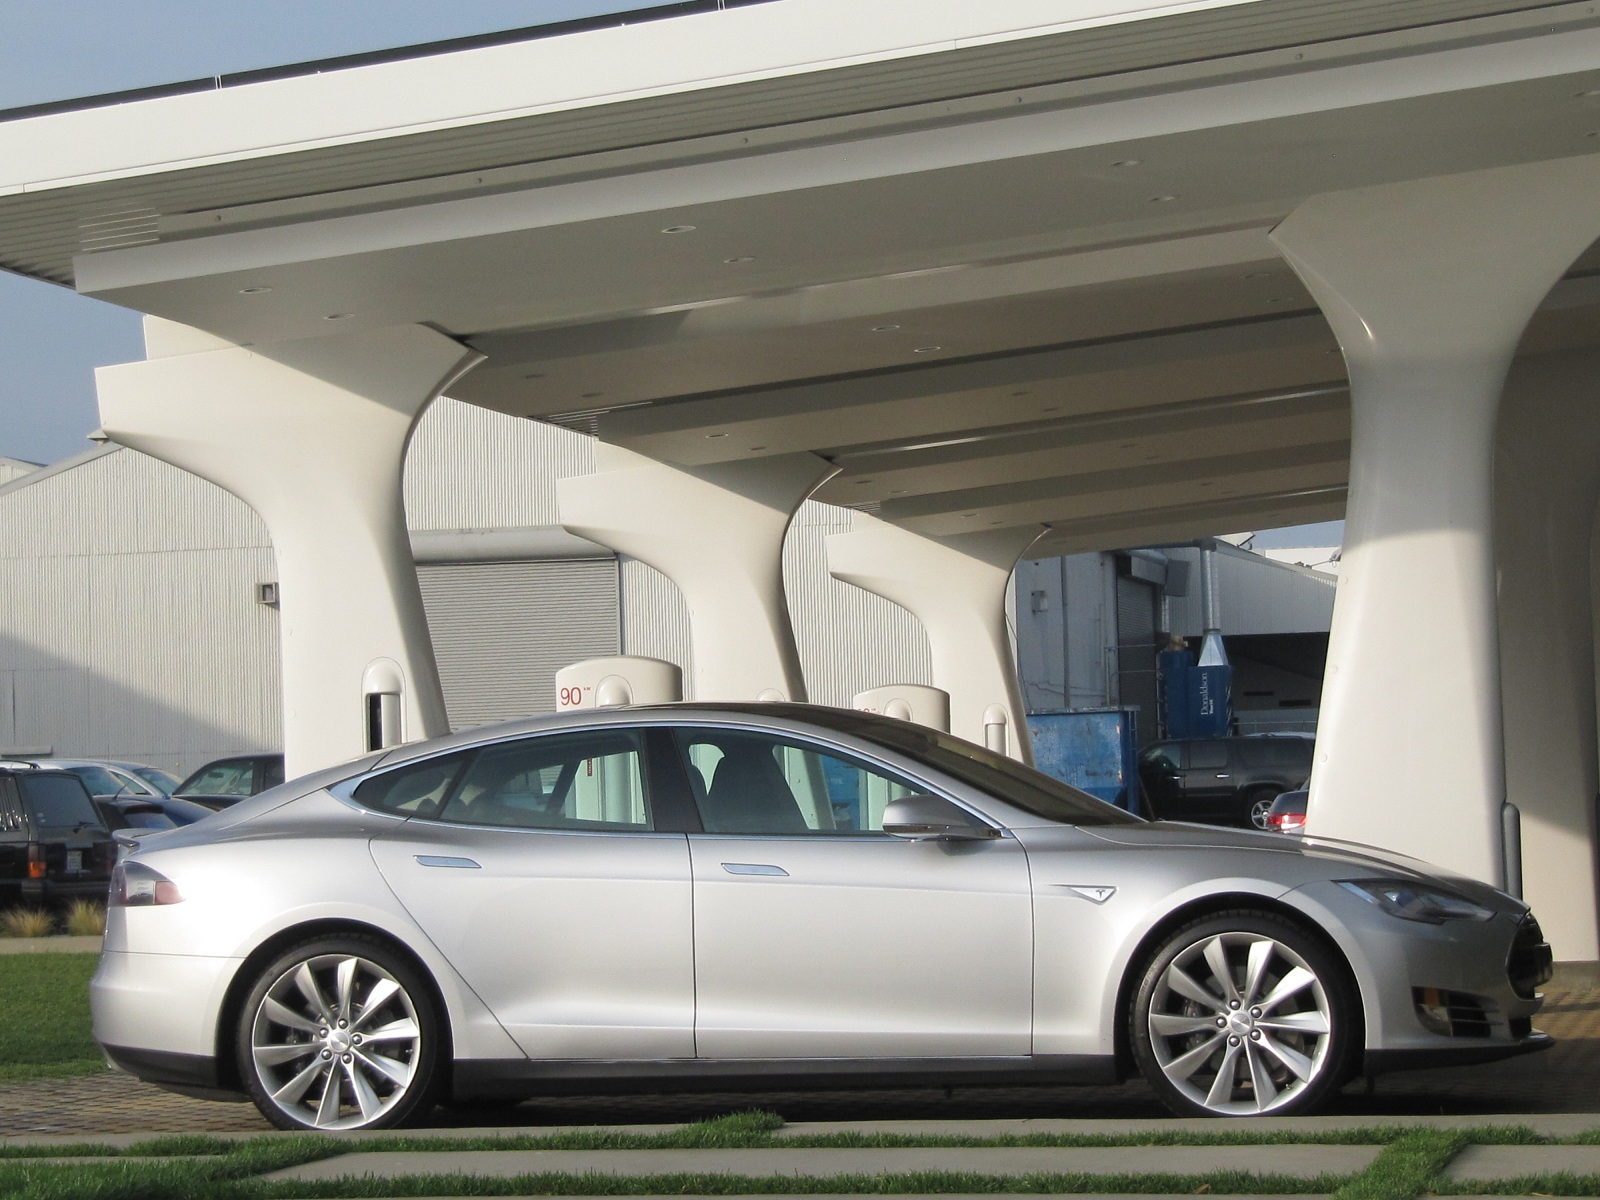 Tesla Model S Safety, Nissans On Amazon, Cadillac ELR In CA, Plug-In